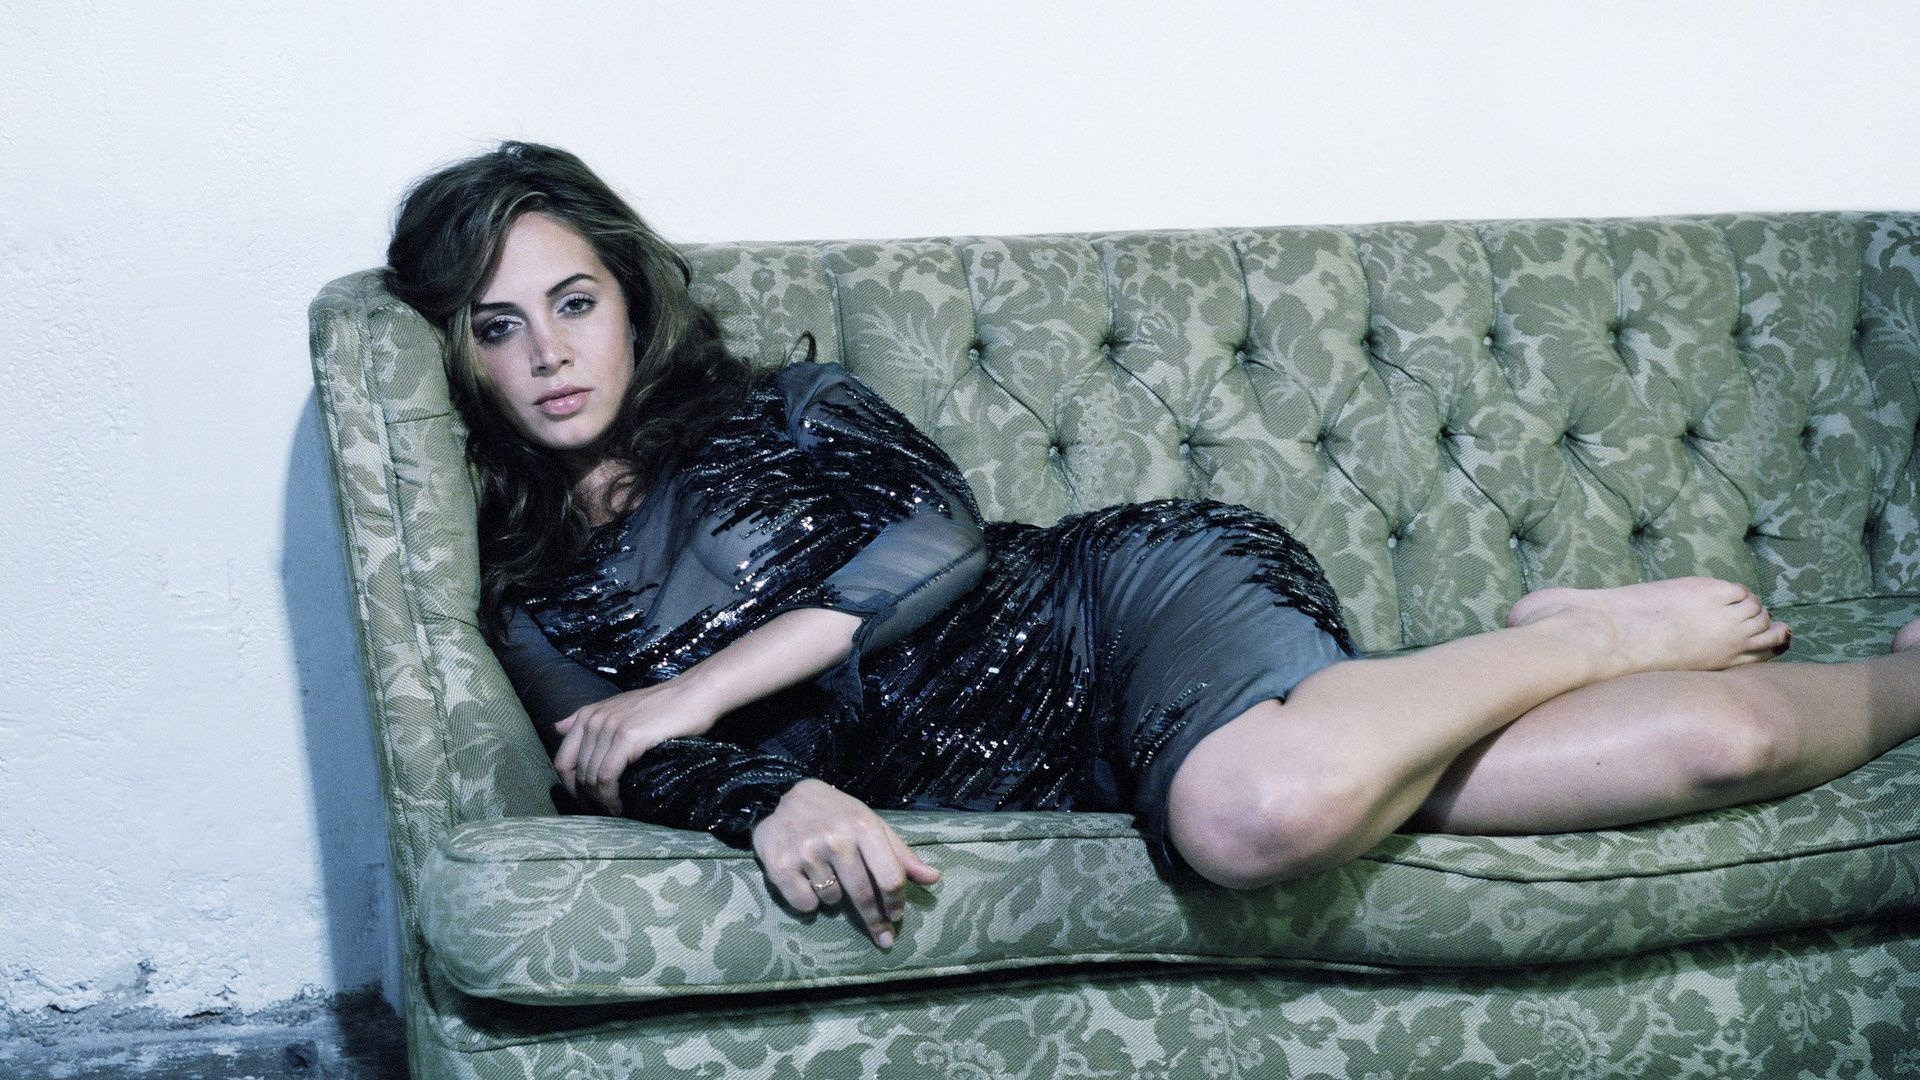 Eliza Dushku Sofa for 1920 x 1080 HDTV 1080p resolution